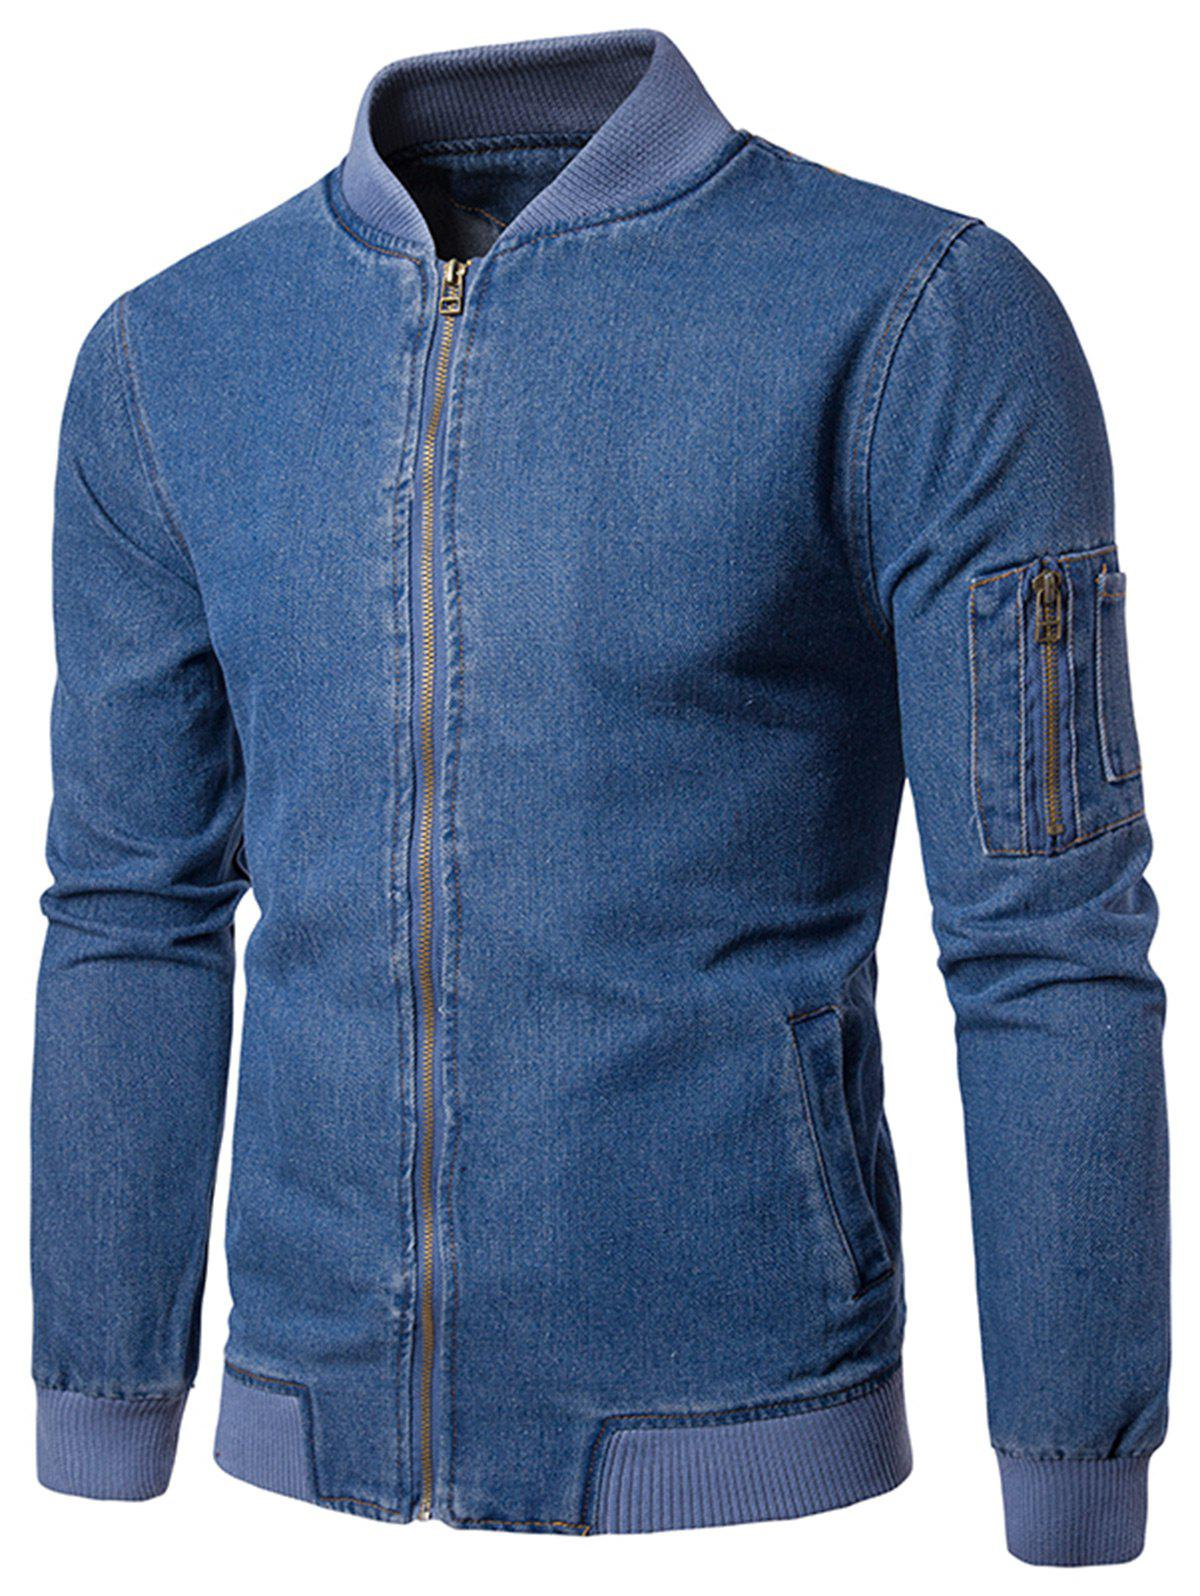 Ribbed Hem Zip Up Denim Jacket - BLUE M